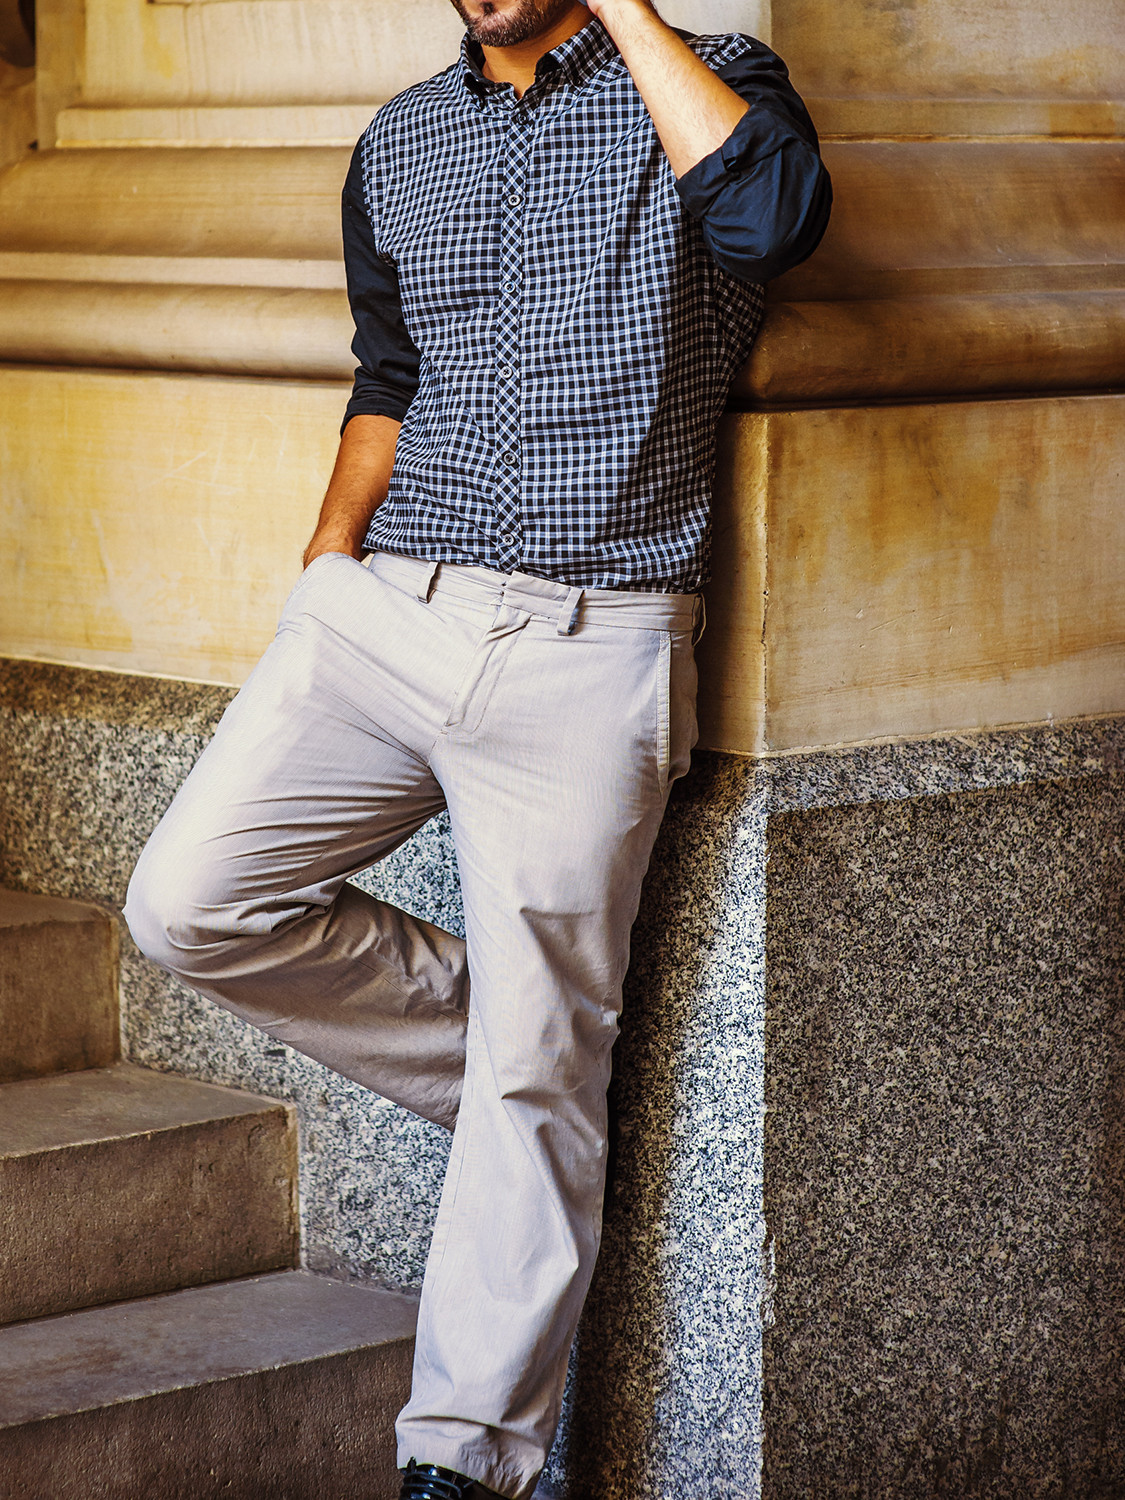 Men's outfit idea for 2021 with navy small-check casual shirt, neutral chinos, black oxford / derby shoes. Suitable for spring, summer and autumn.